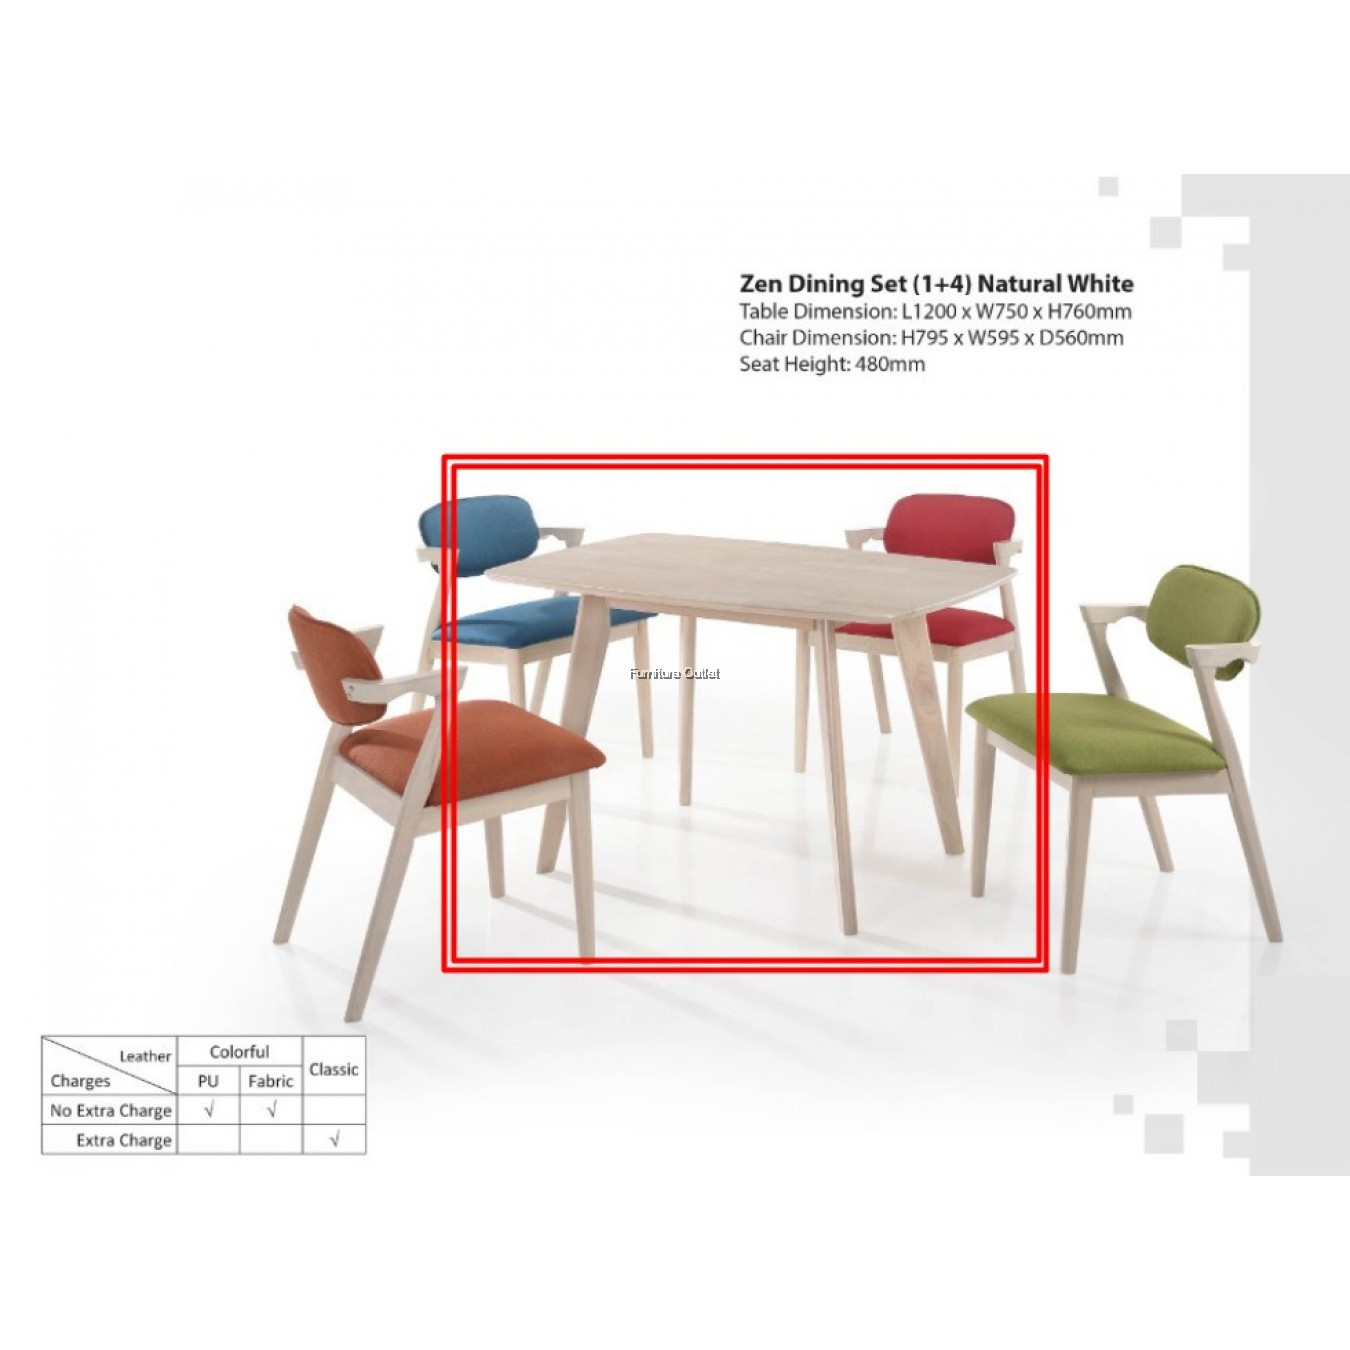 ZEN DINING TABLE - 1200mm OR 1650mm